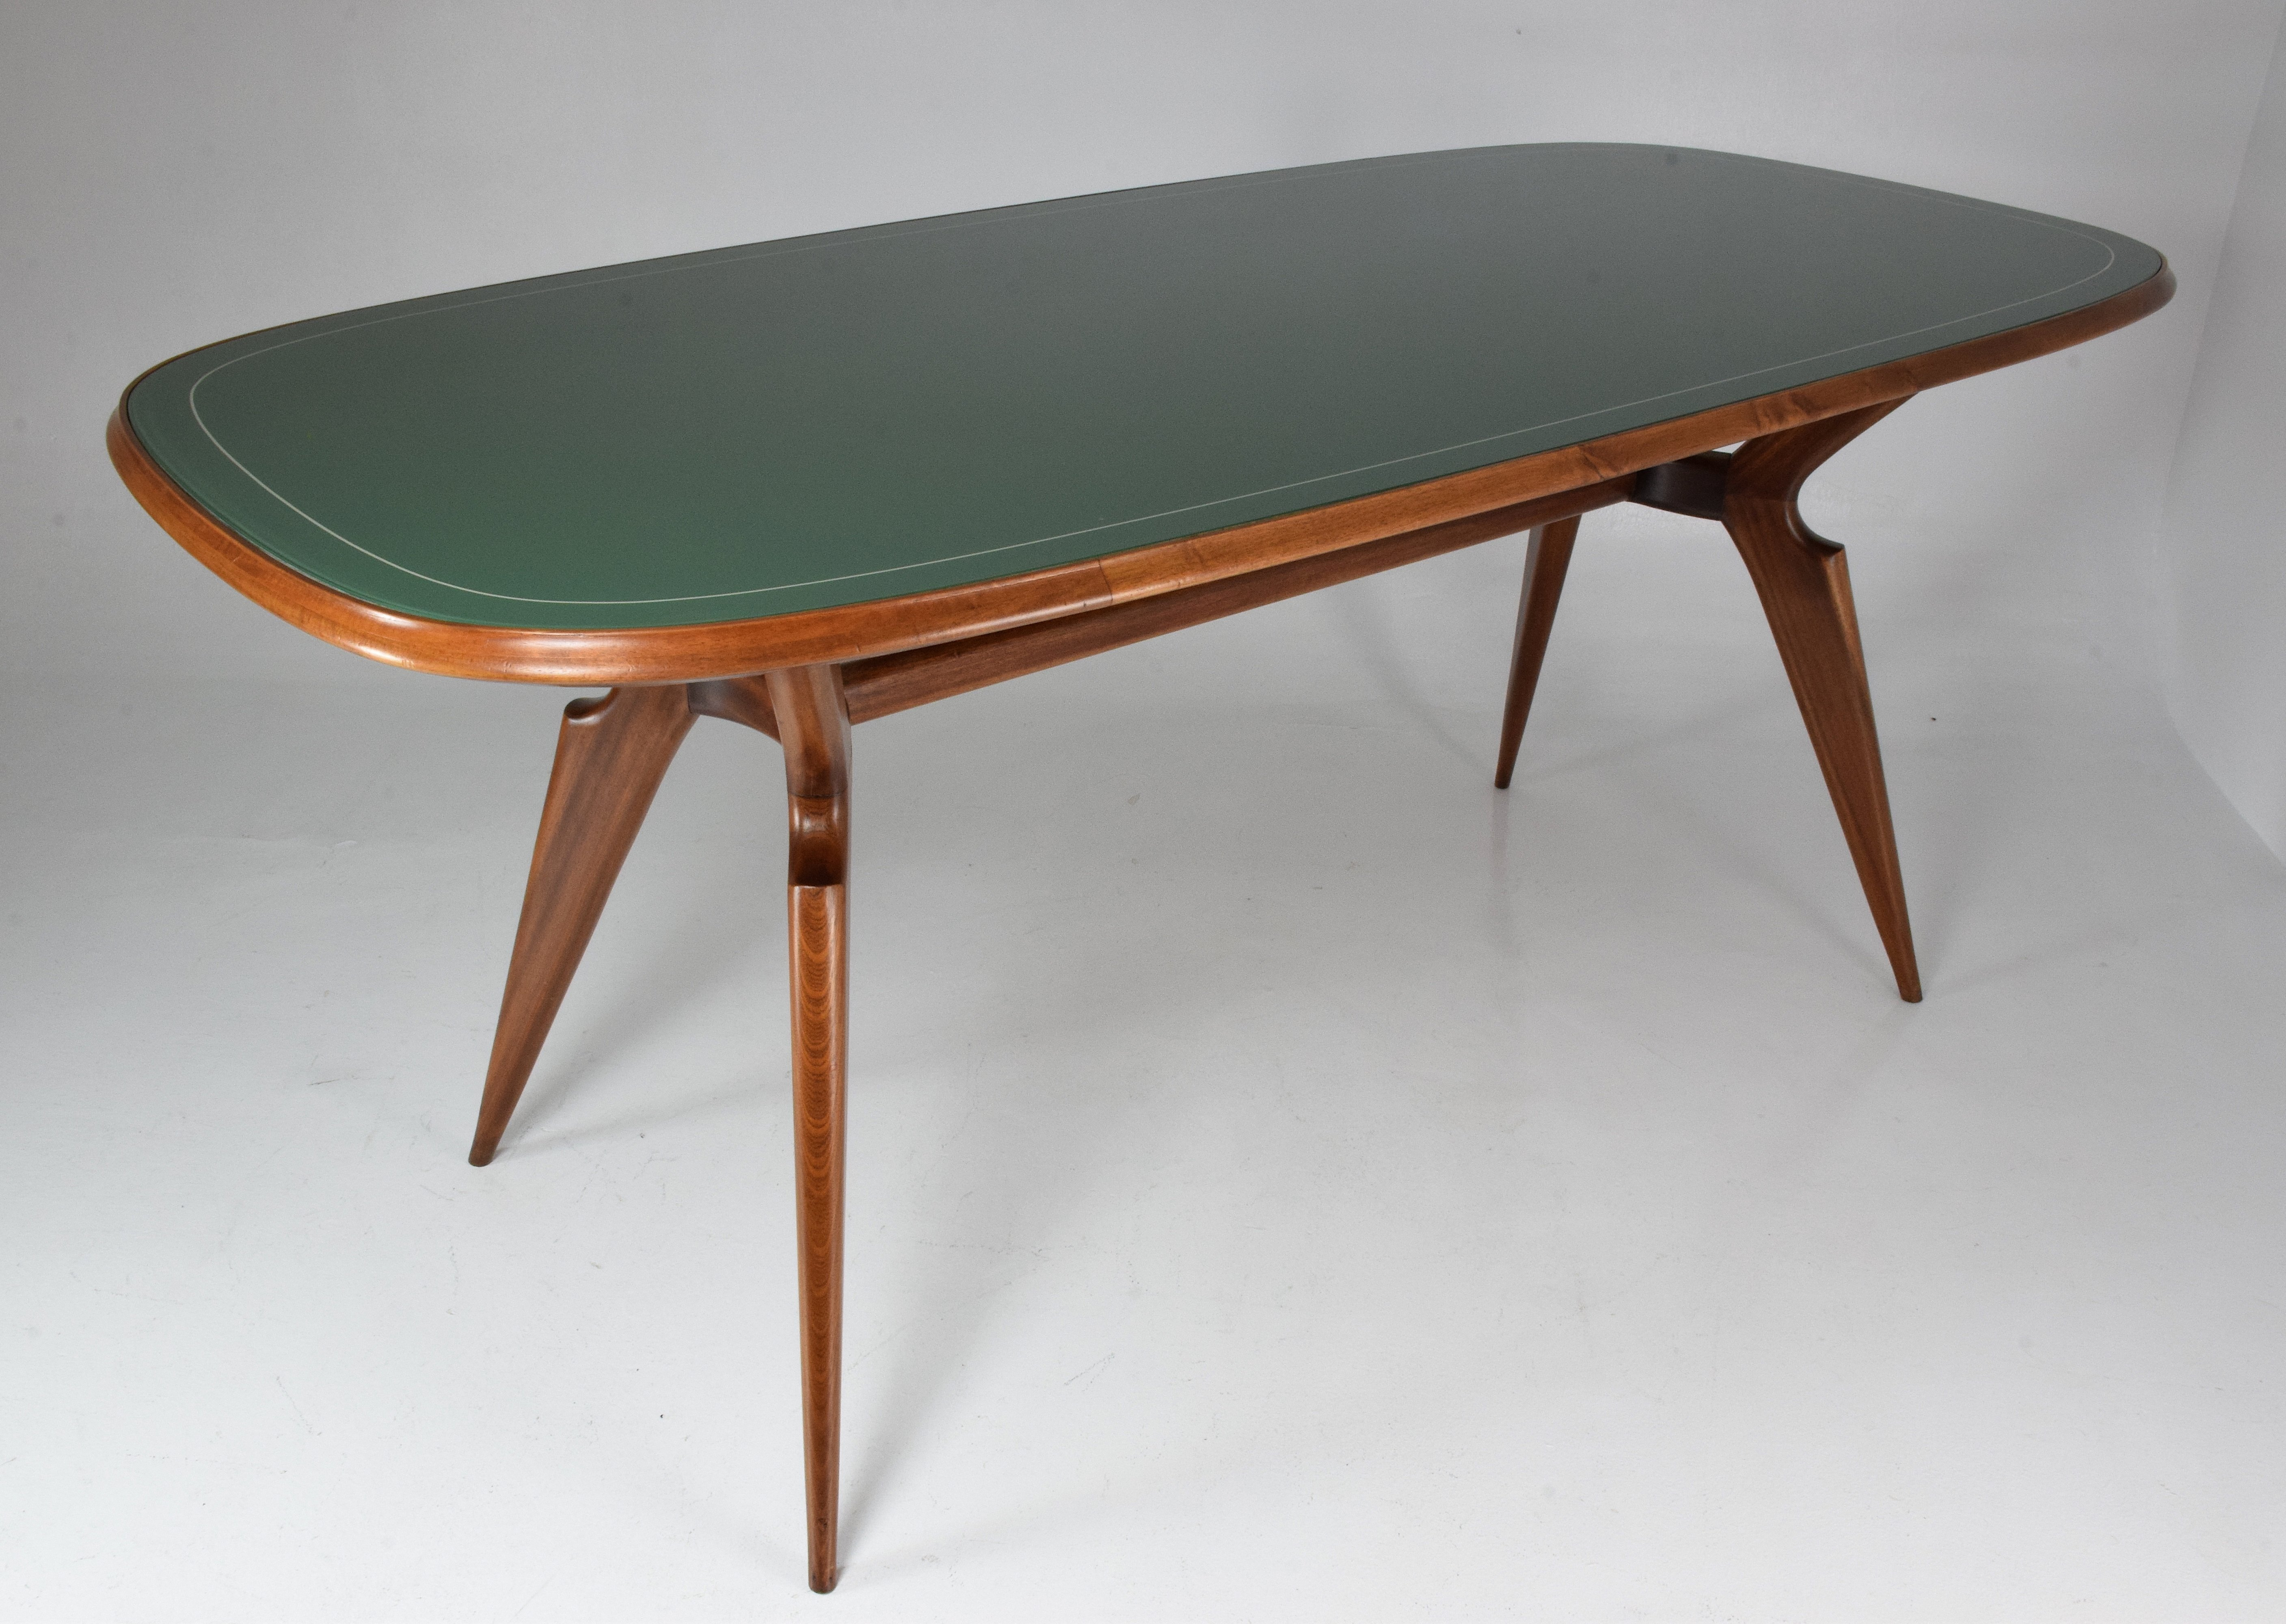 Italian Mid Century Dining Table With Green Glass Tabletop